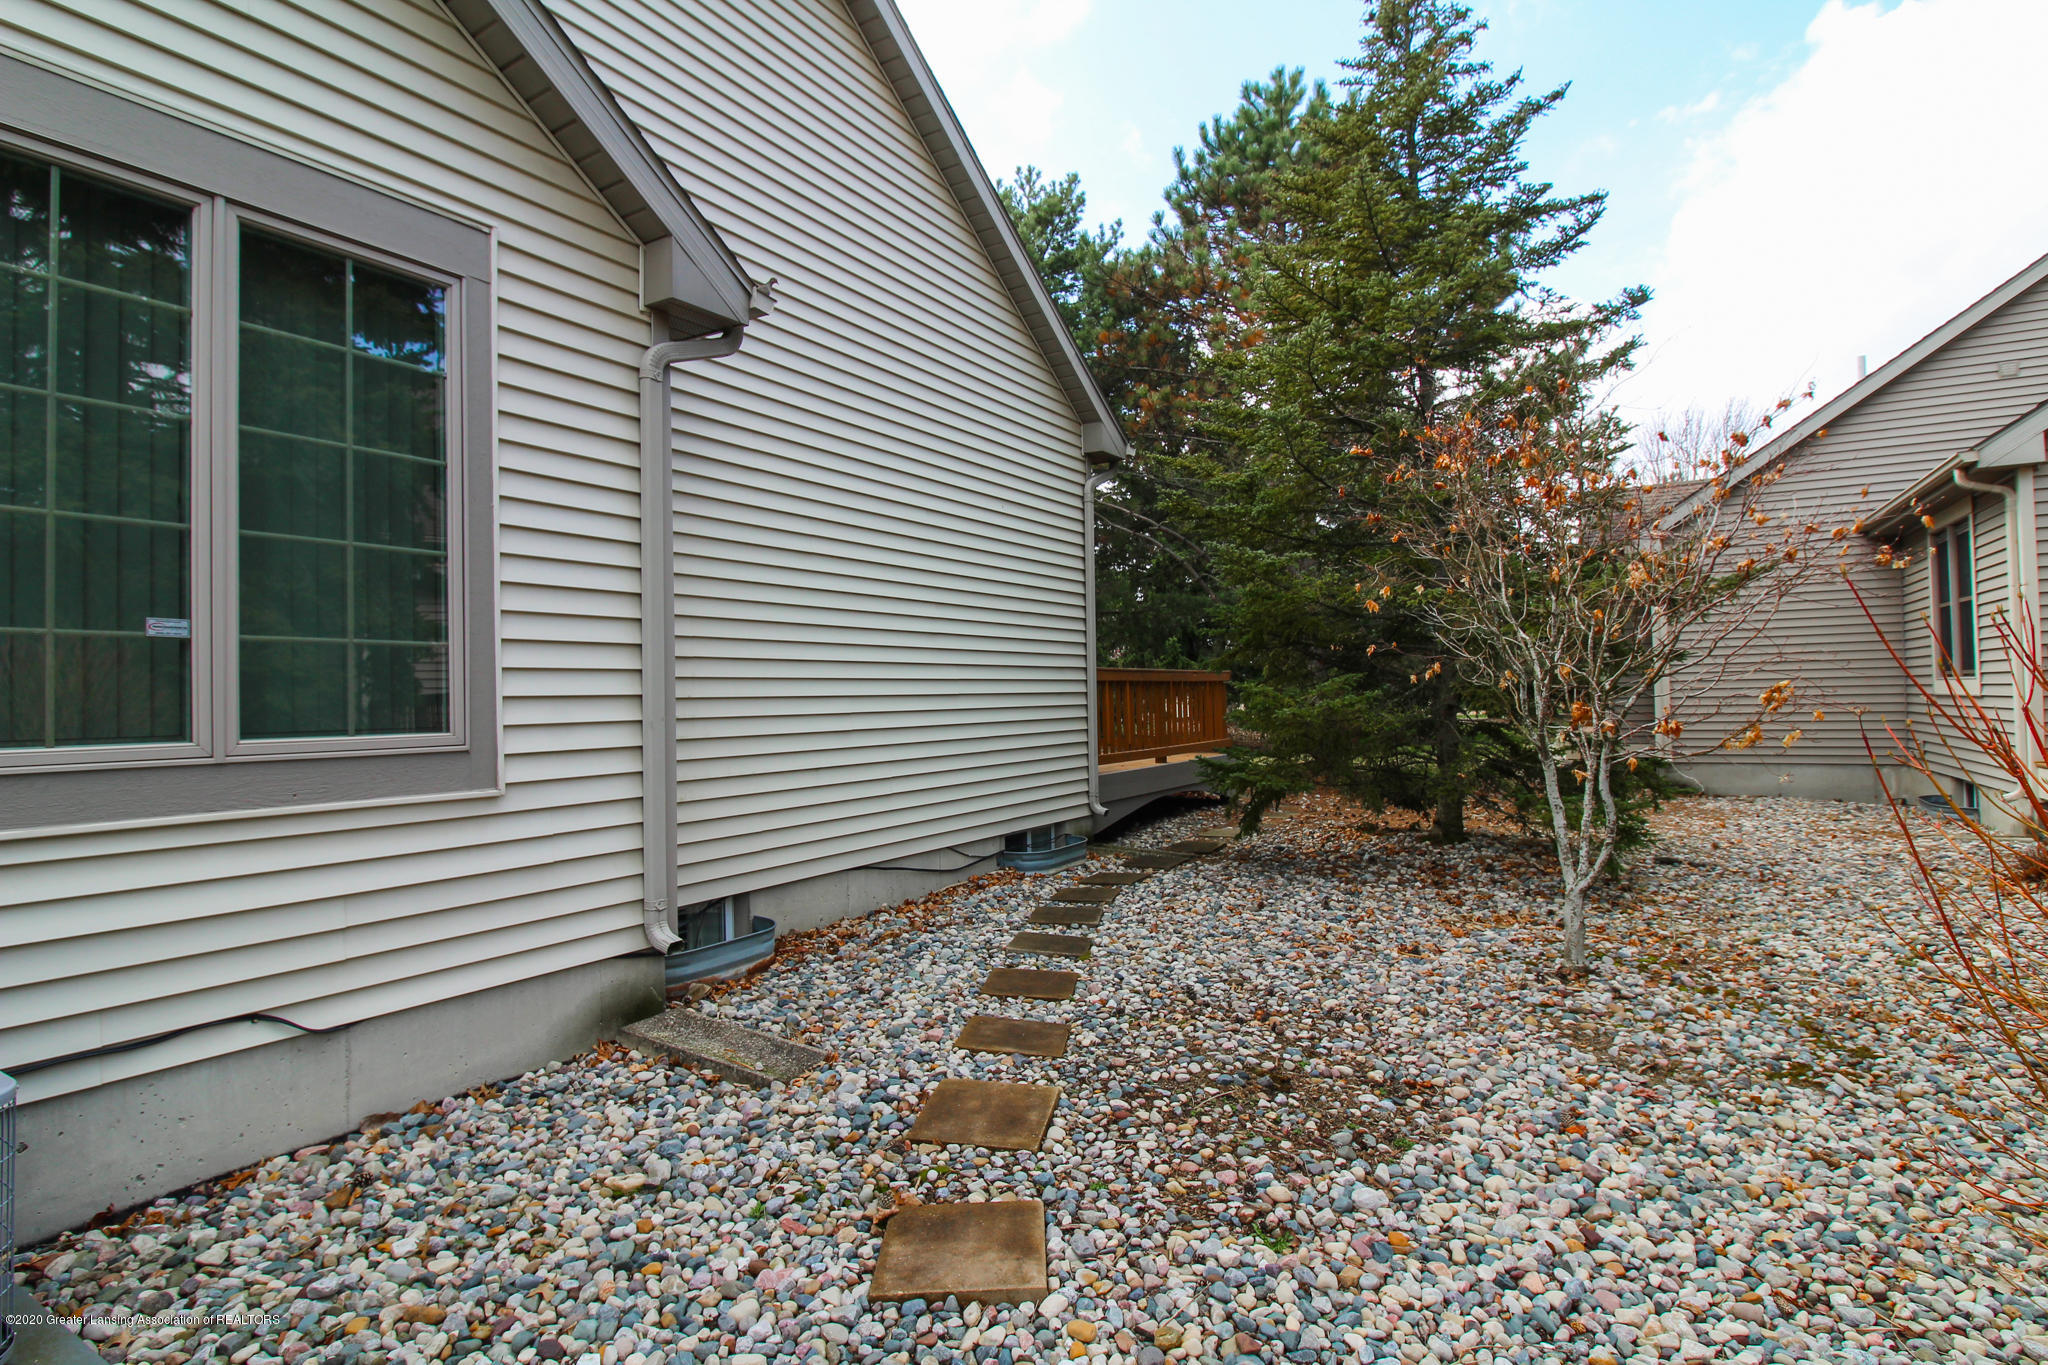 516 Cherbourg Dr - Exterior Side - 34